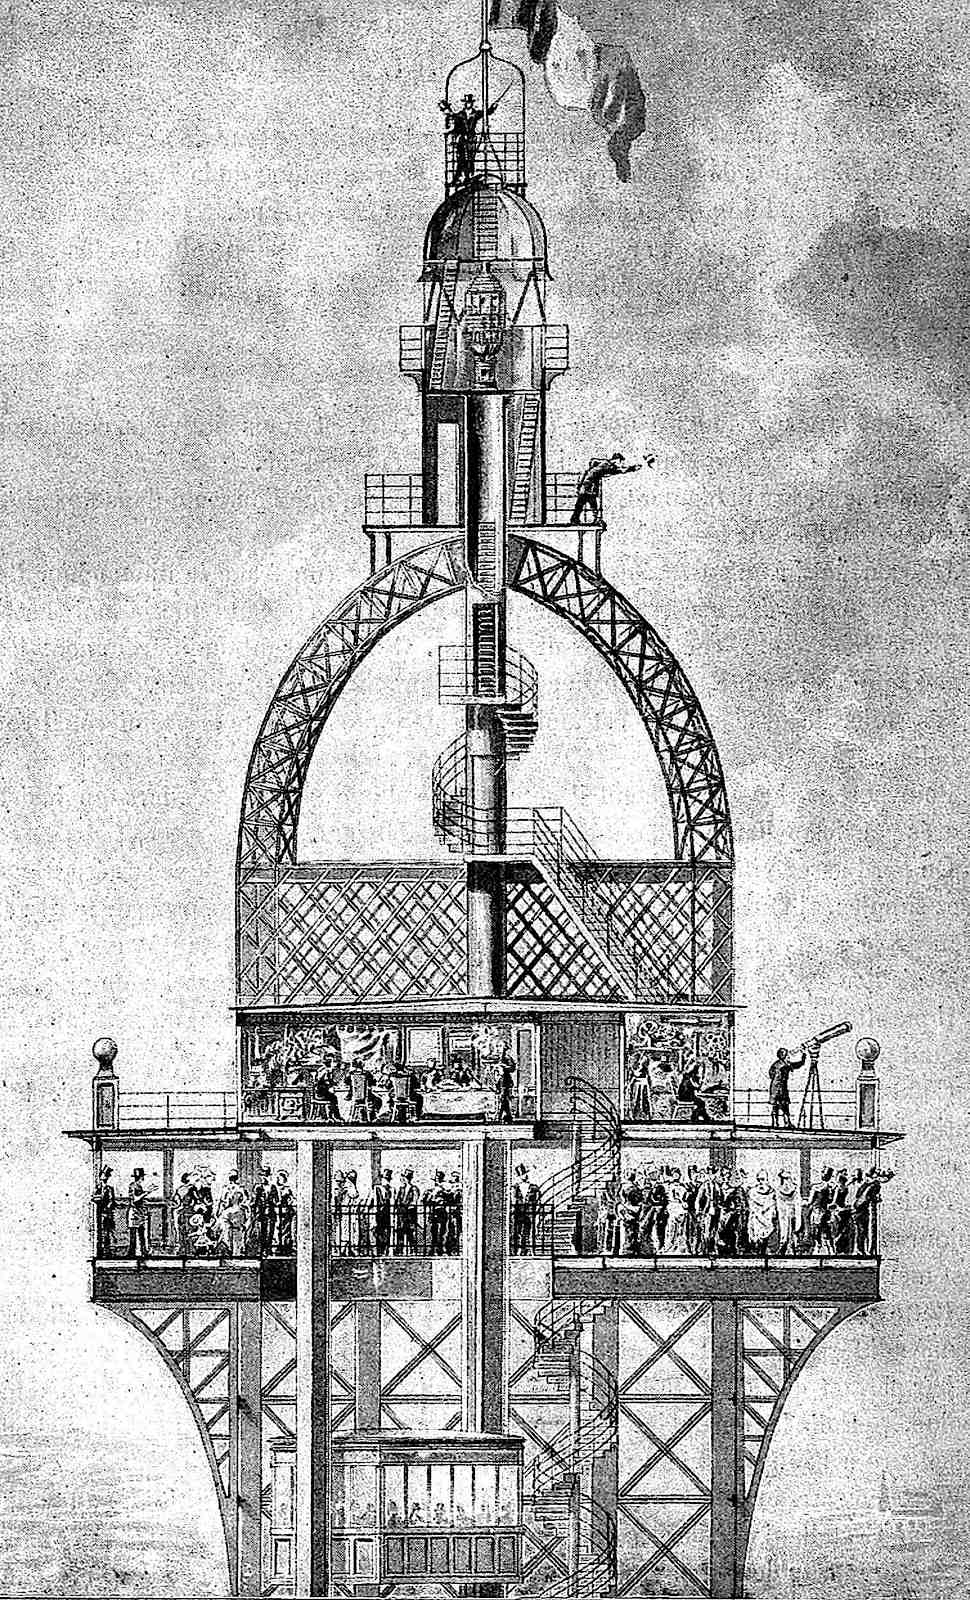 the top of the Eiffel tower 1900 Paris, an illustration